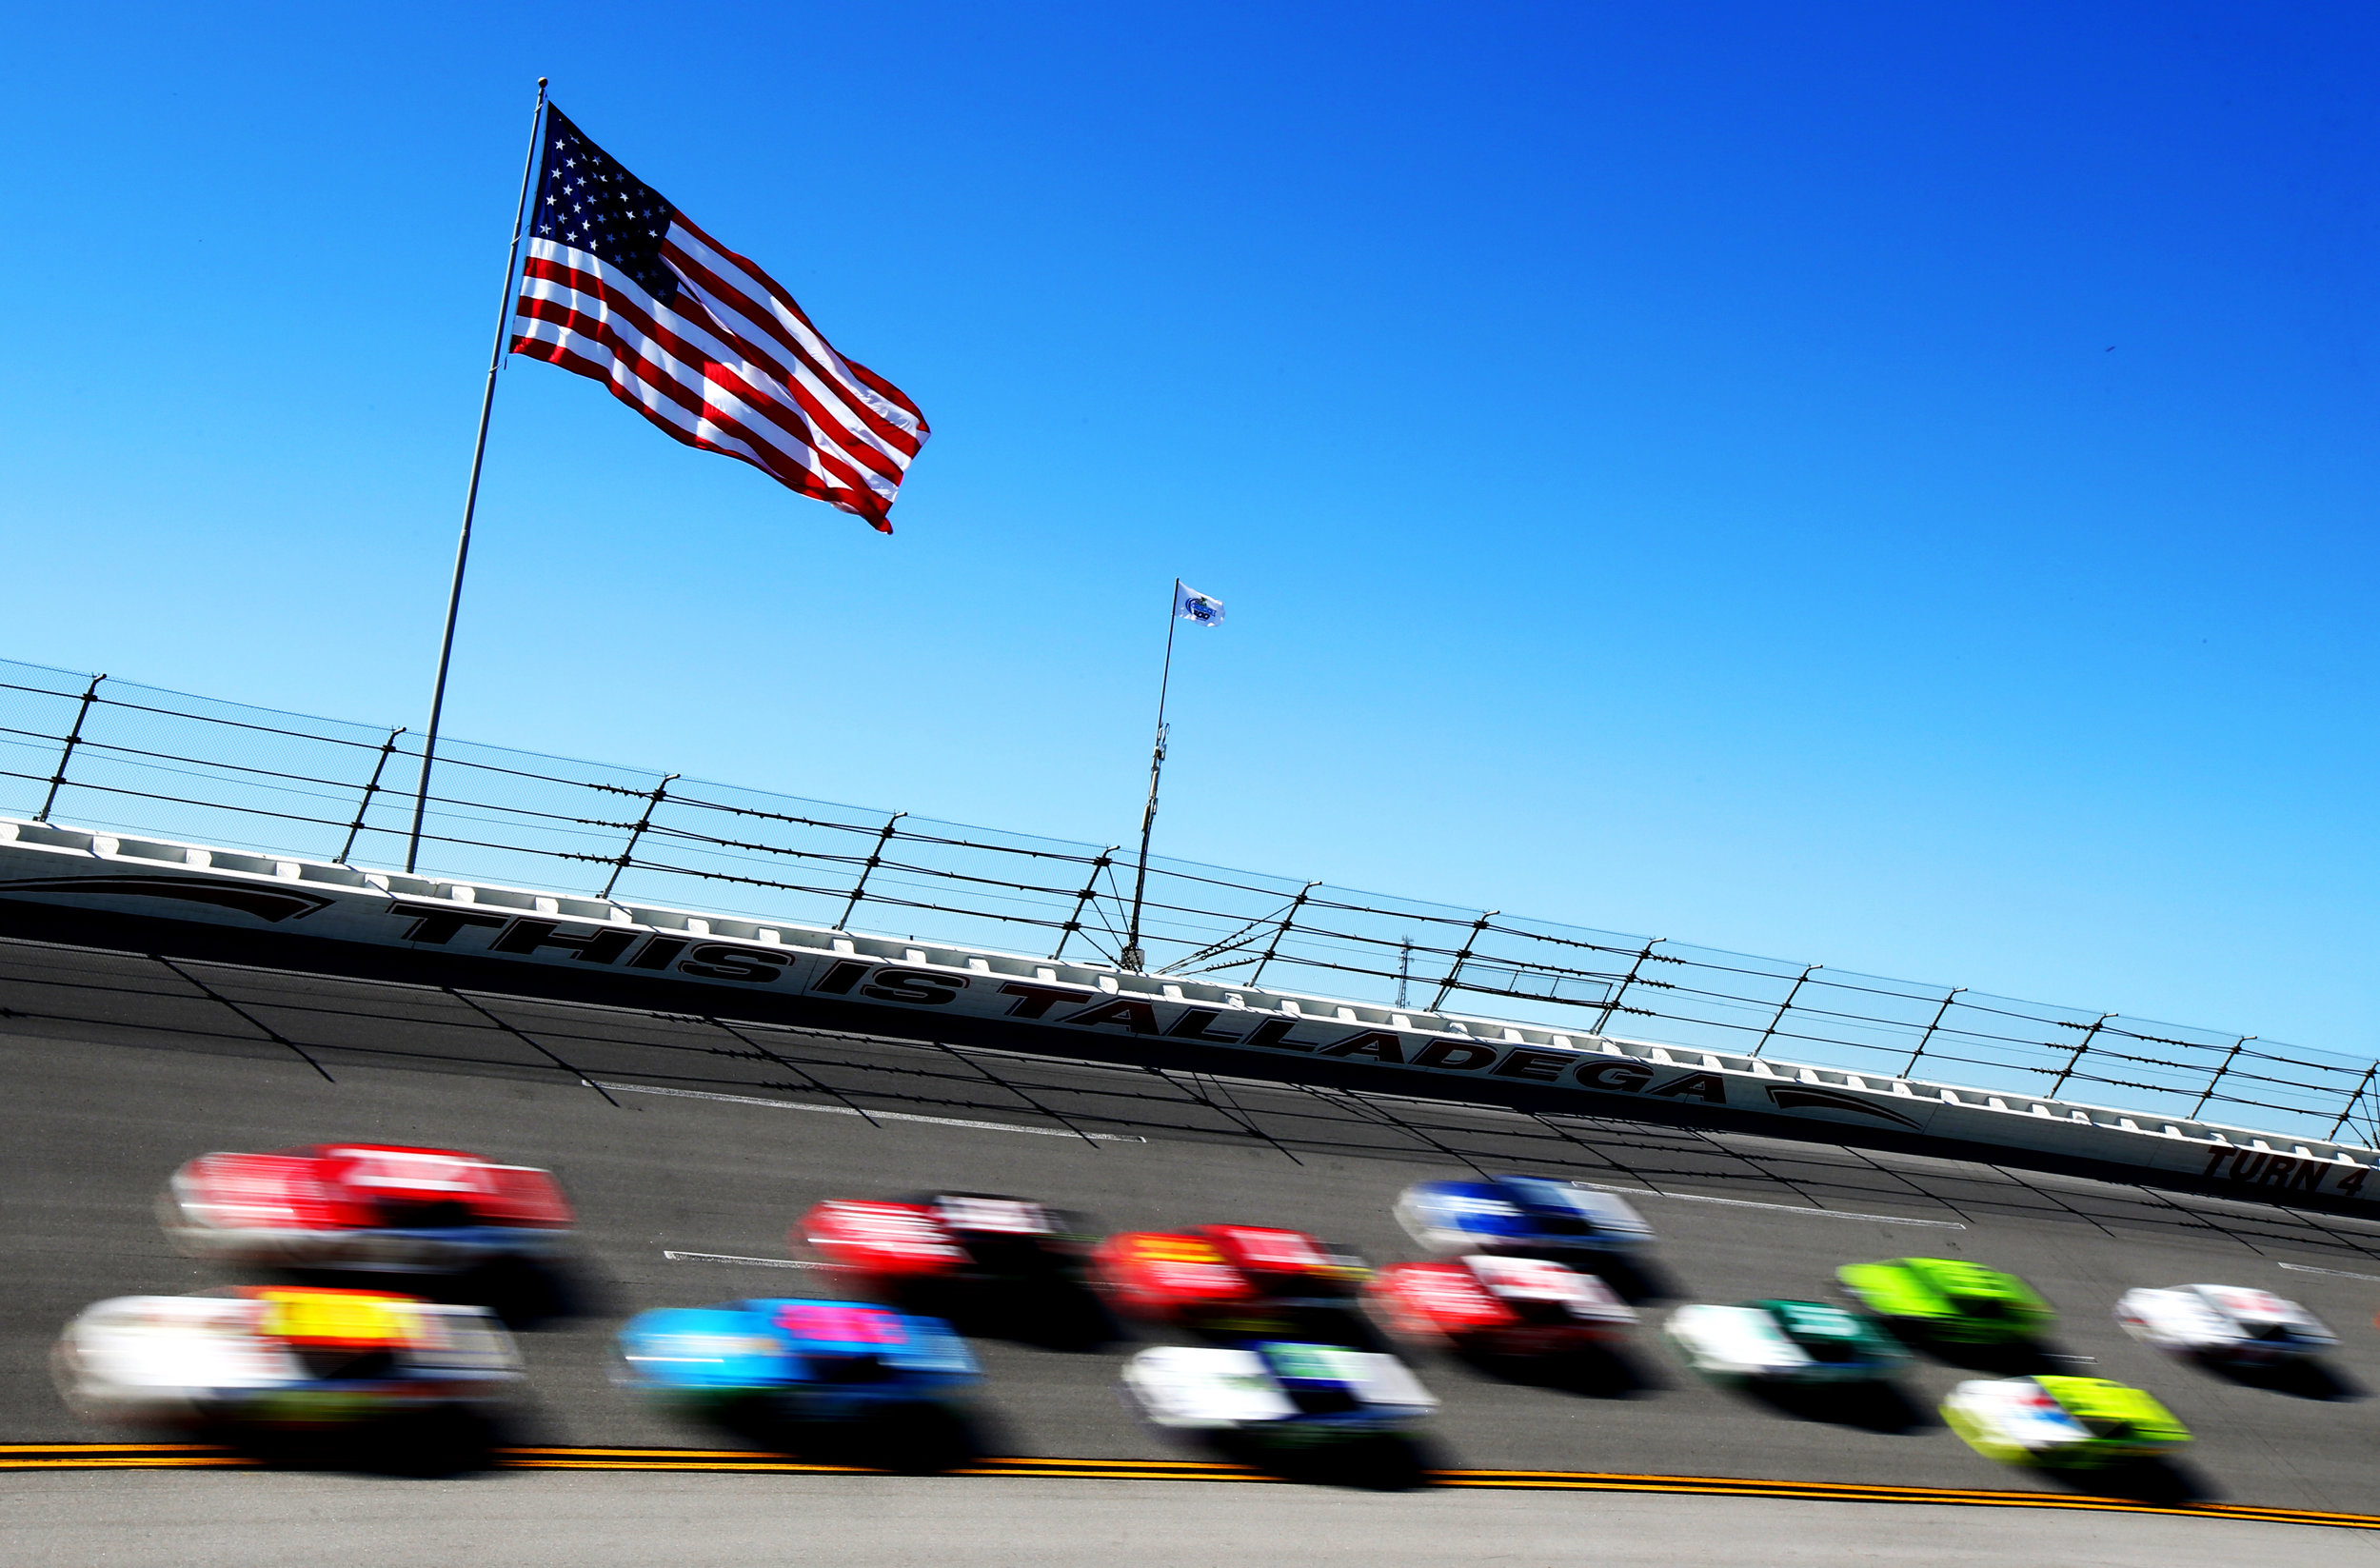 TALLADEGA, AL - MAY 07: Cars race during the Monster Energy NASCAR Cup Series GEICO 500 at Talladega Superspeedway on May 7, 2017 in Talladega, Alabama. (Photo by Tim Bradbury/Getty Images)